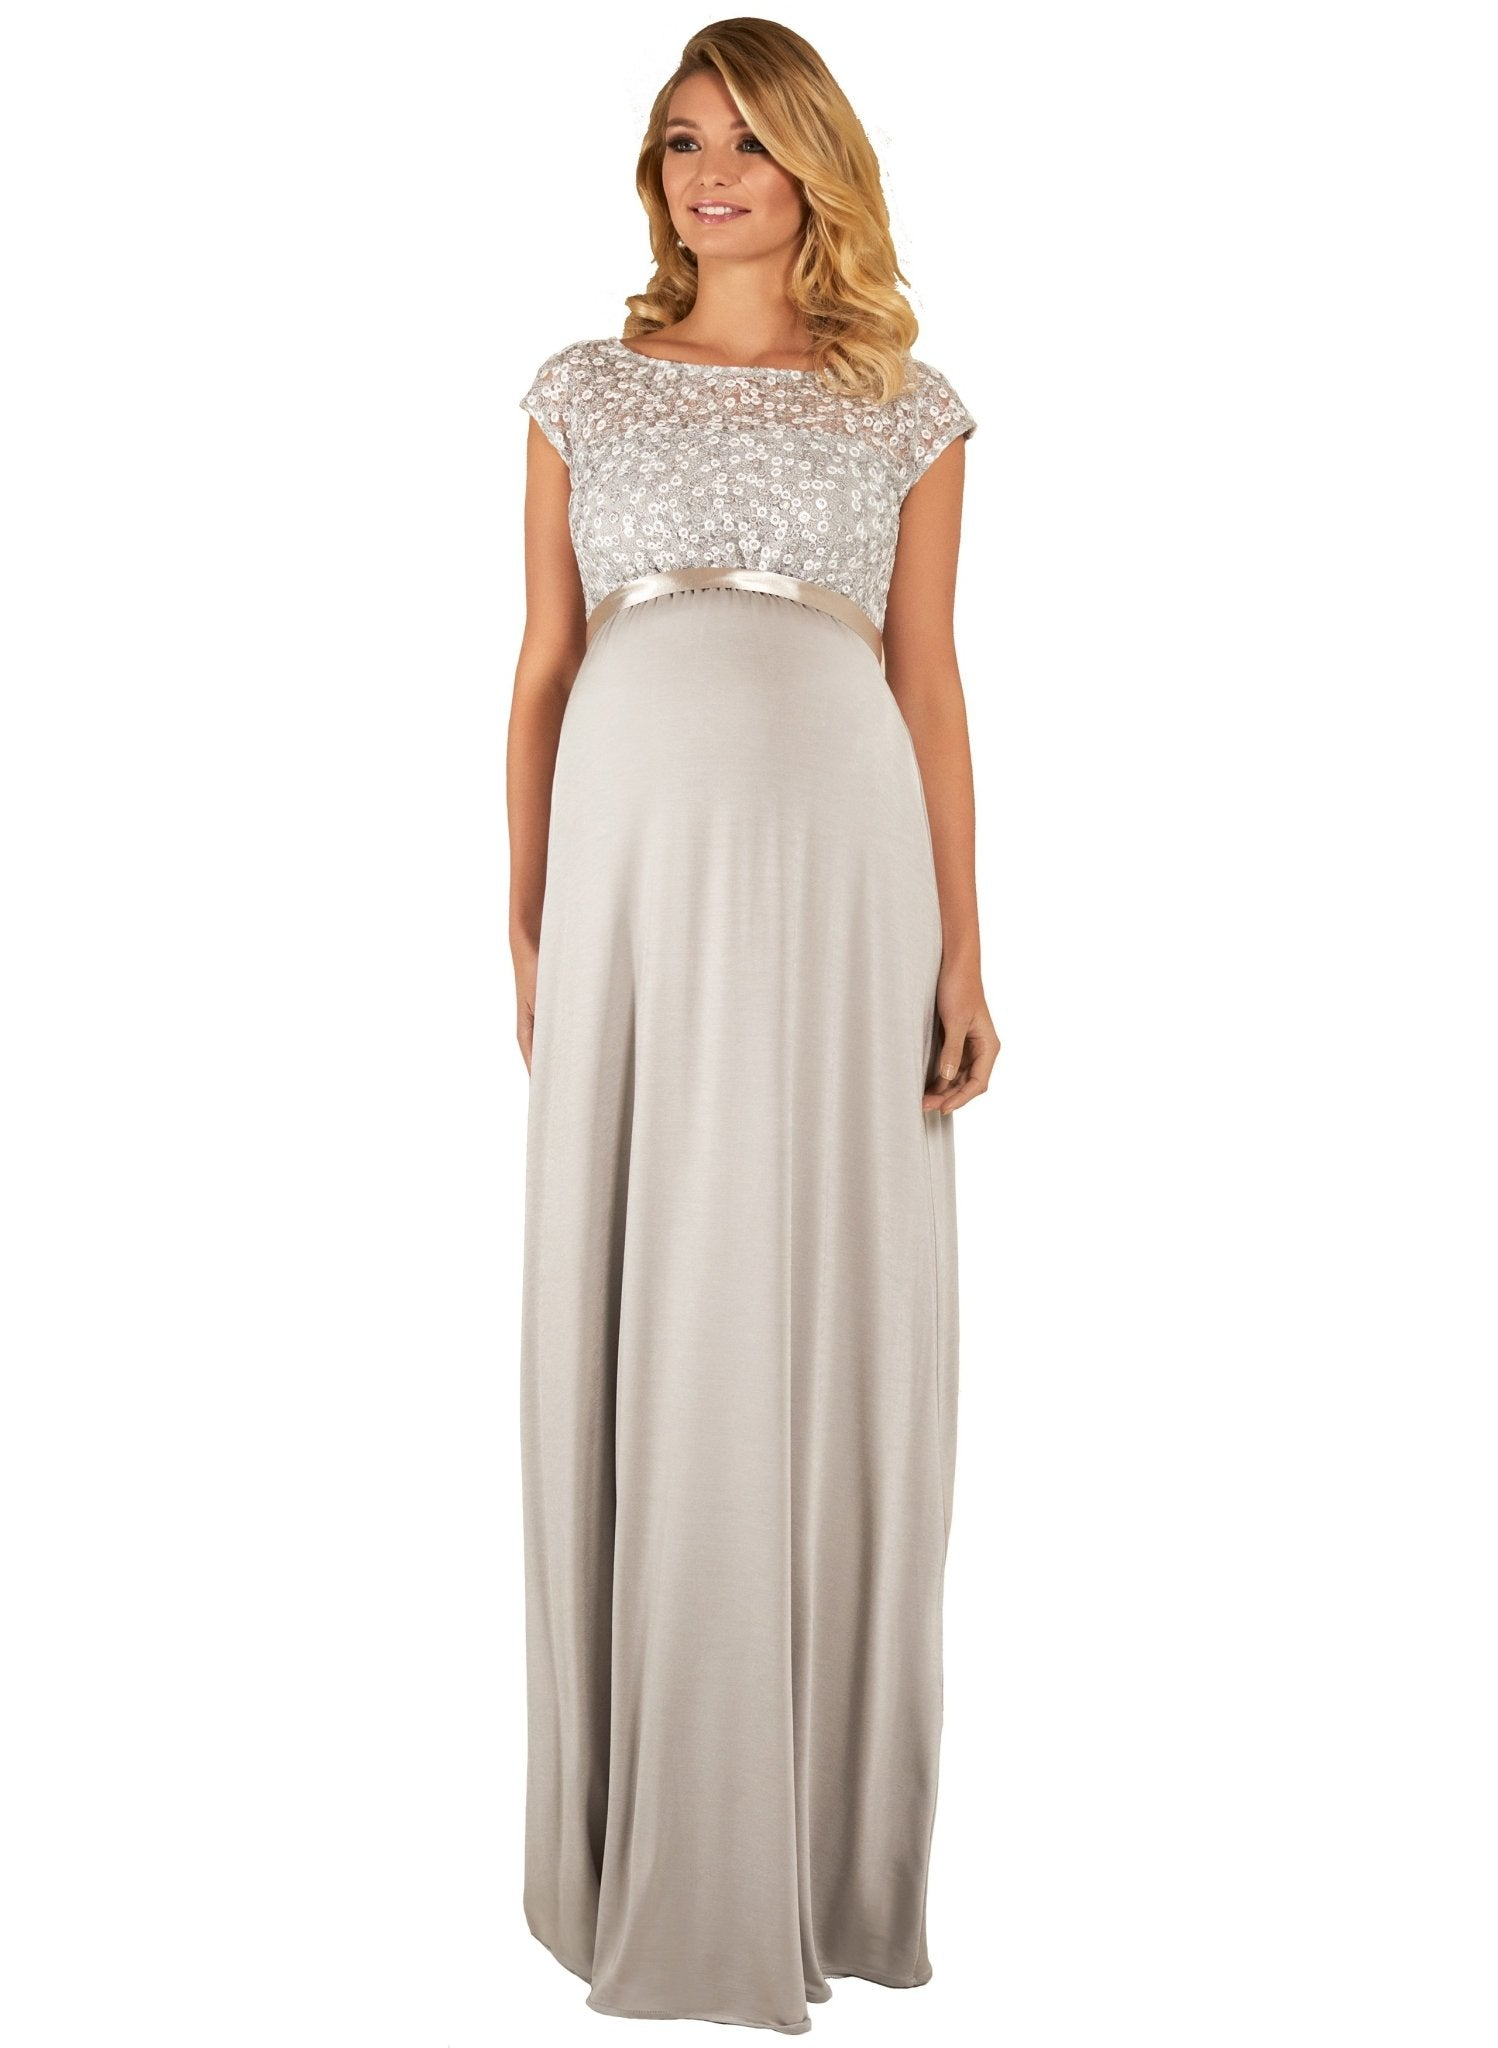 Mia Maternity Gown - Silver - Mums and Bumps